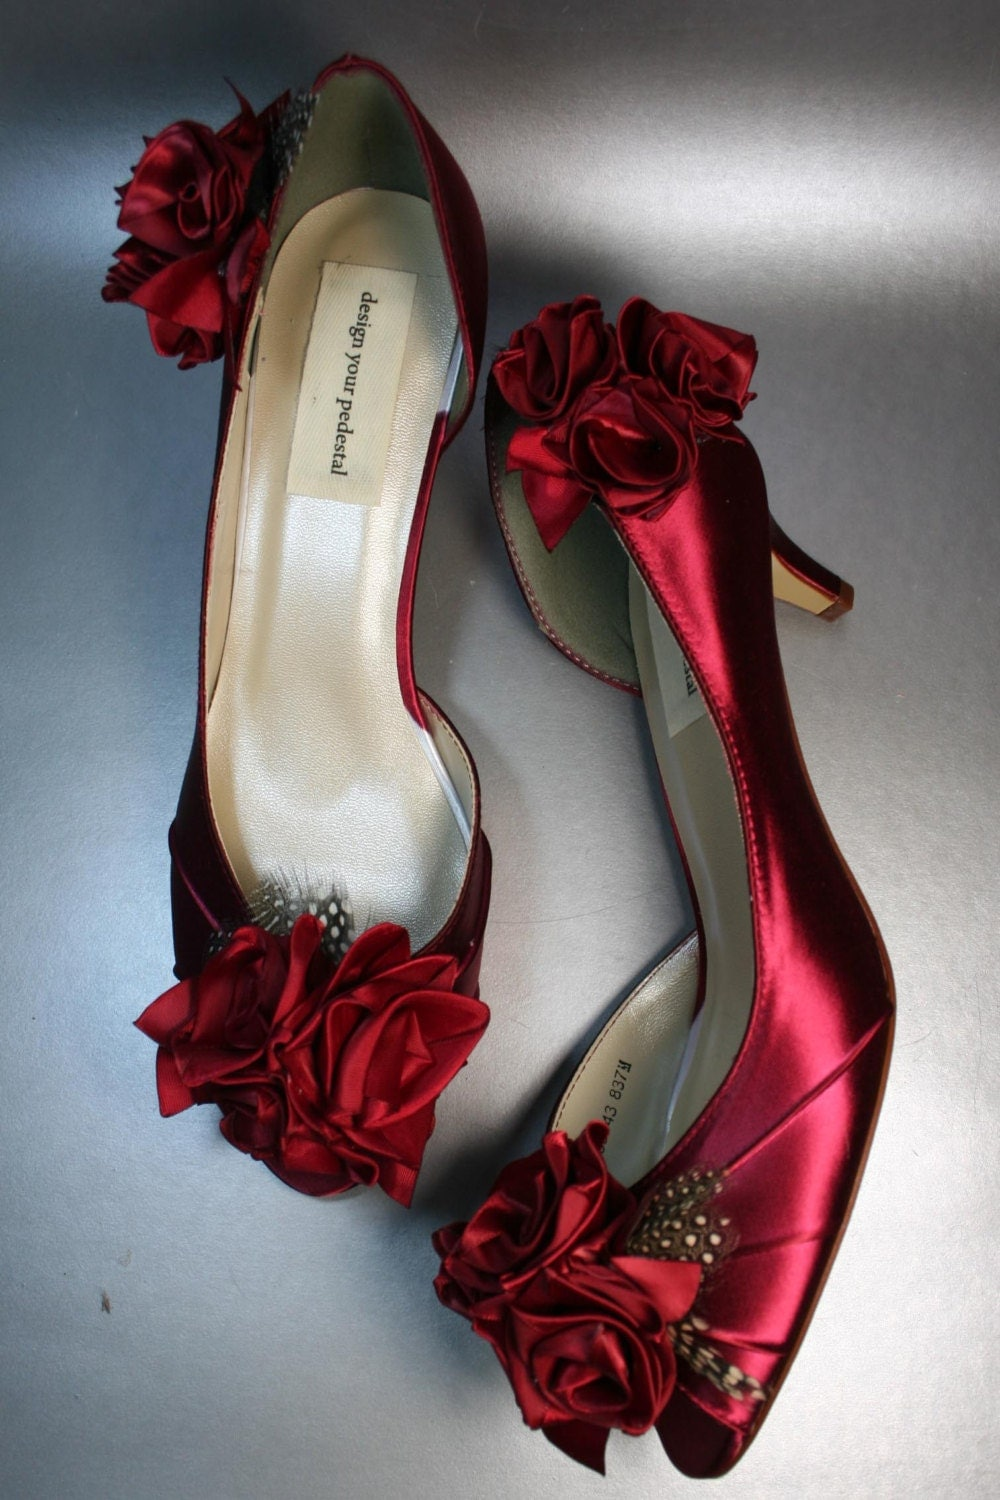 Wedding Shoes -- Scarlet Red Peeptoes with Red Roses on Heel and Toe with Polka Dot Feather Accents